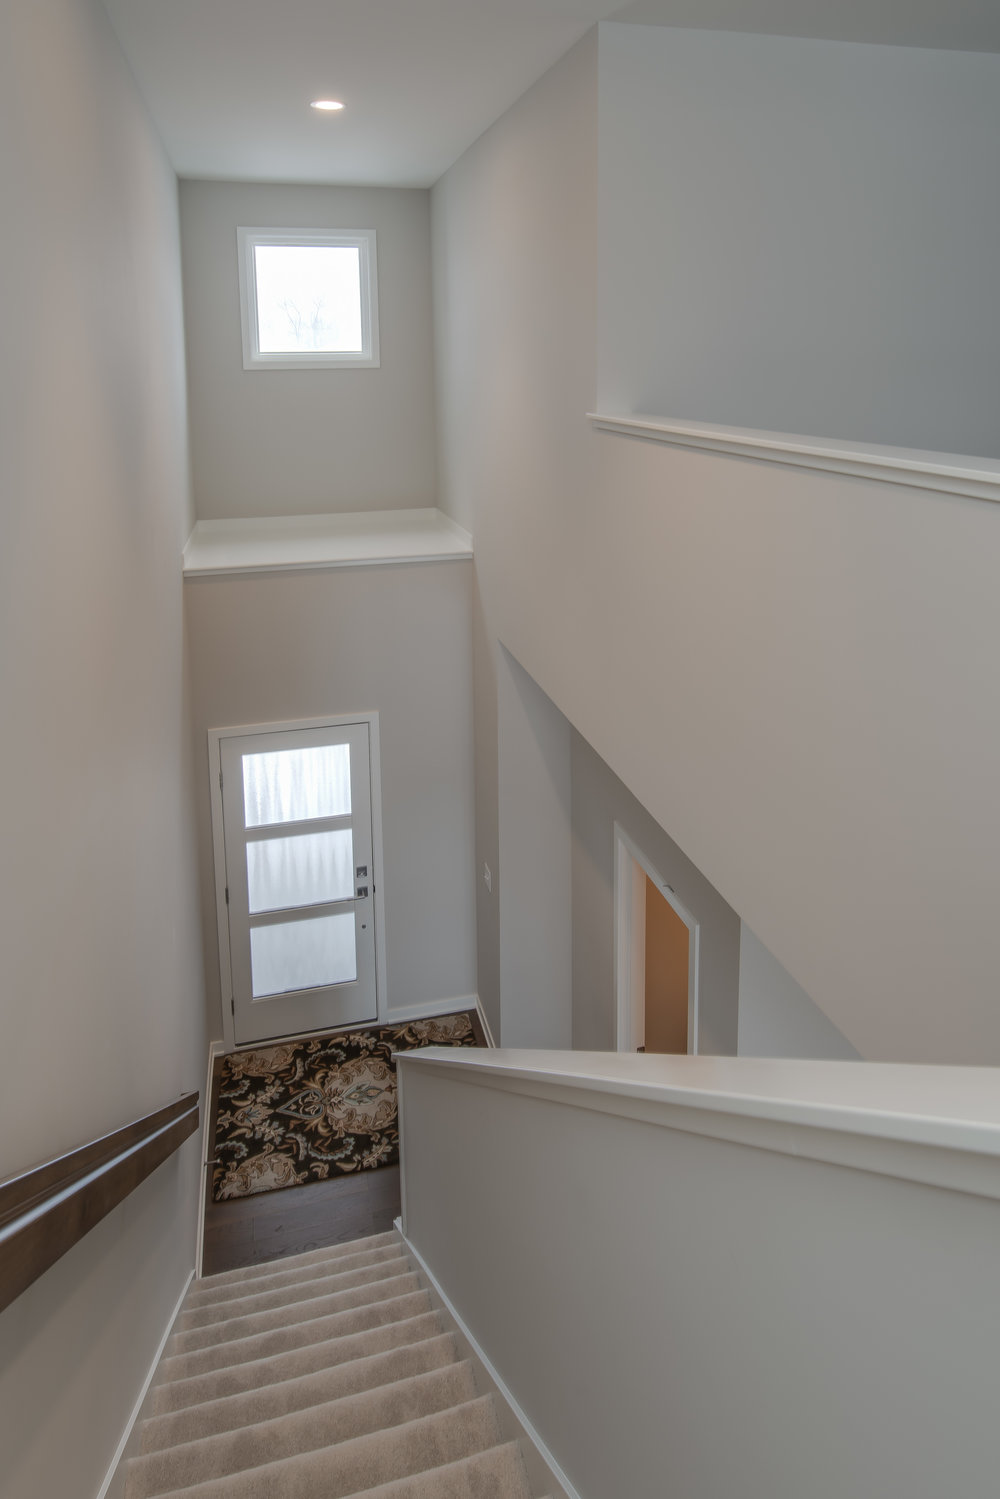 Stairway lighting and entry statement